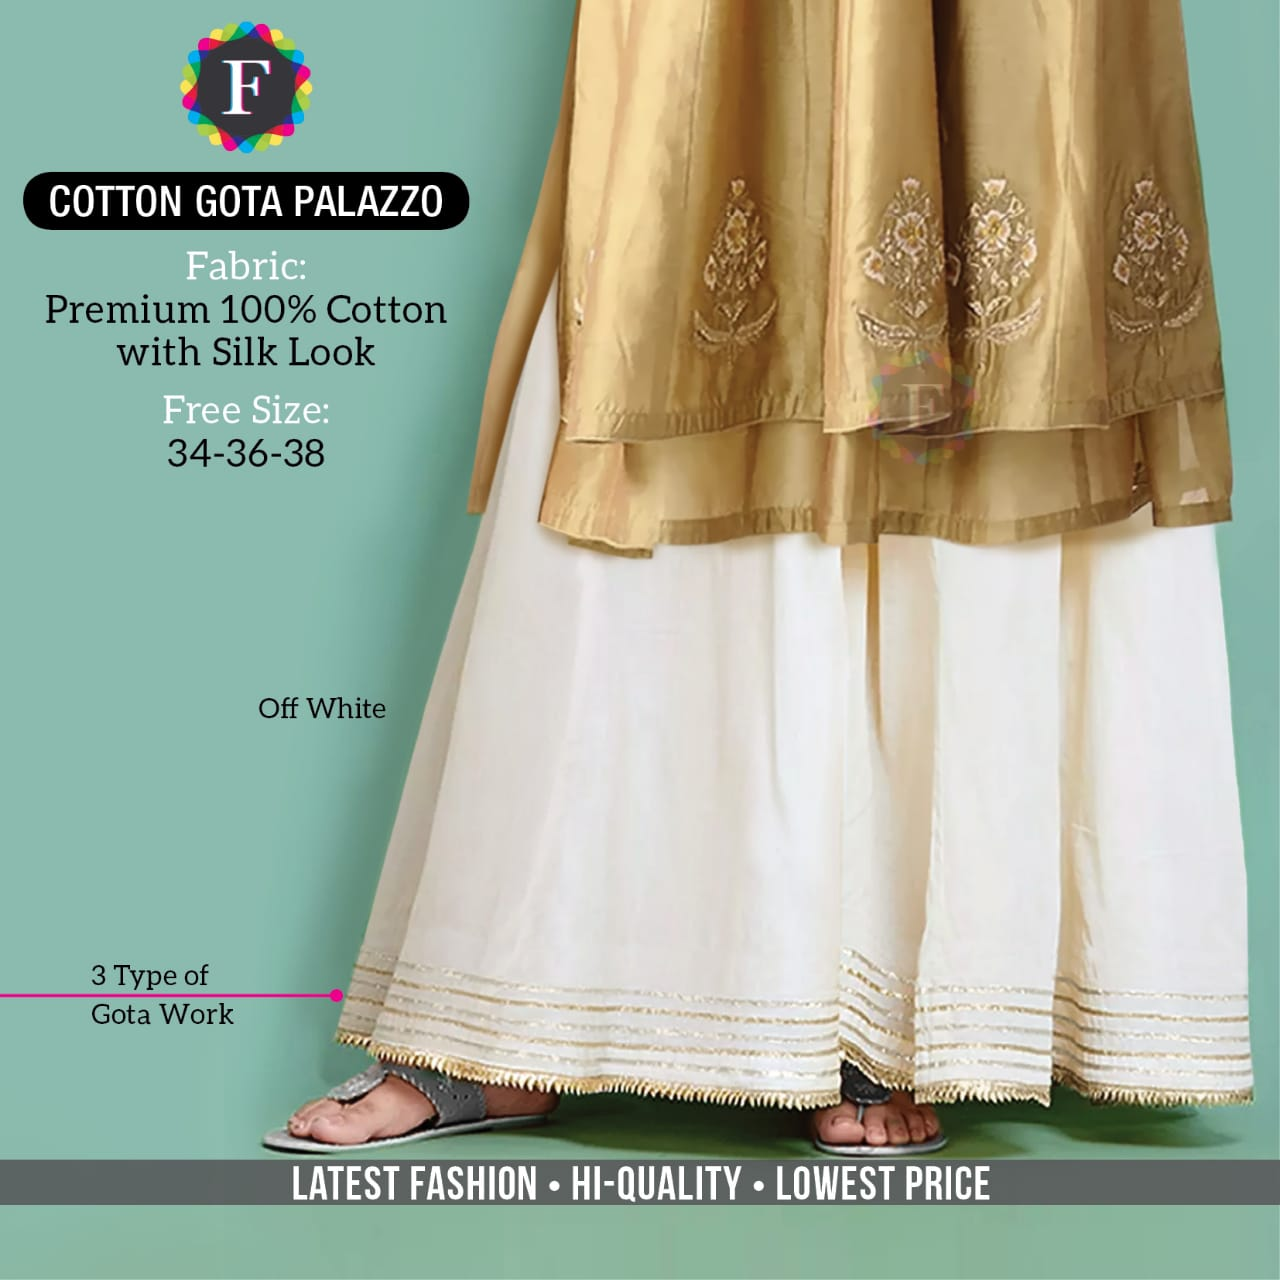 Cotton Gota Palazzo Summer Wear Special Bottom Wear Collection